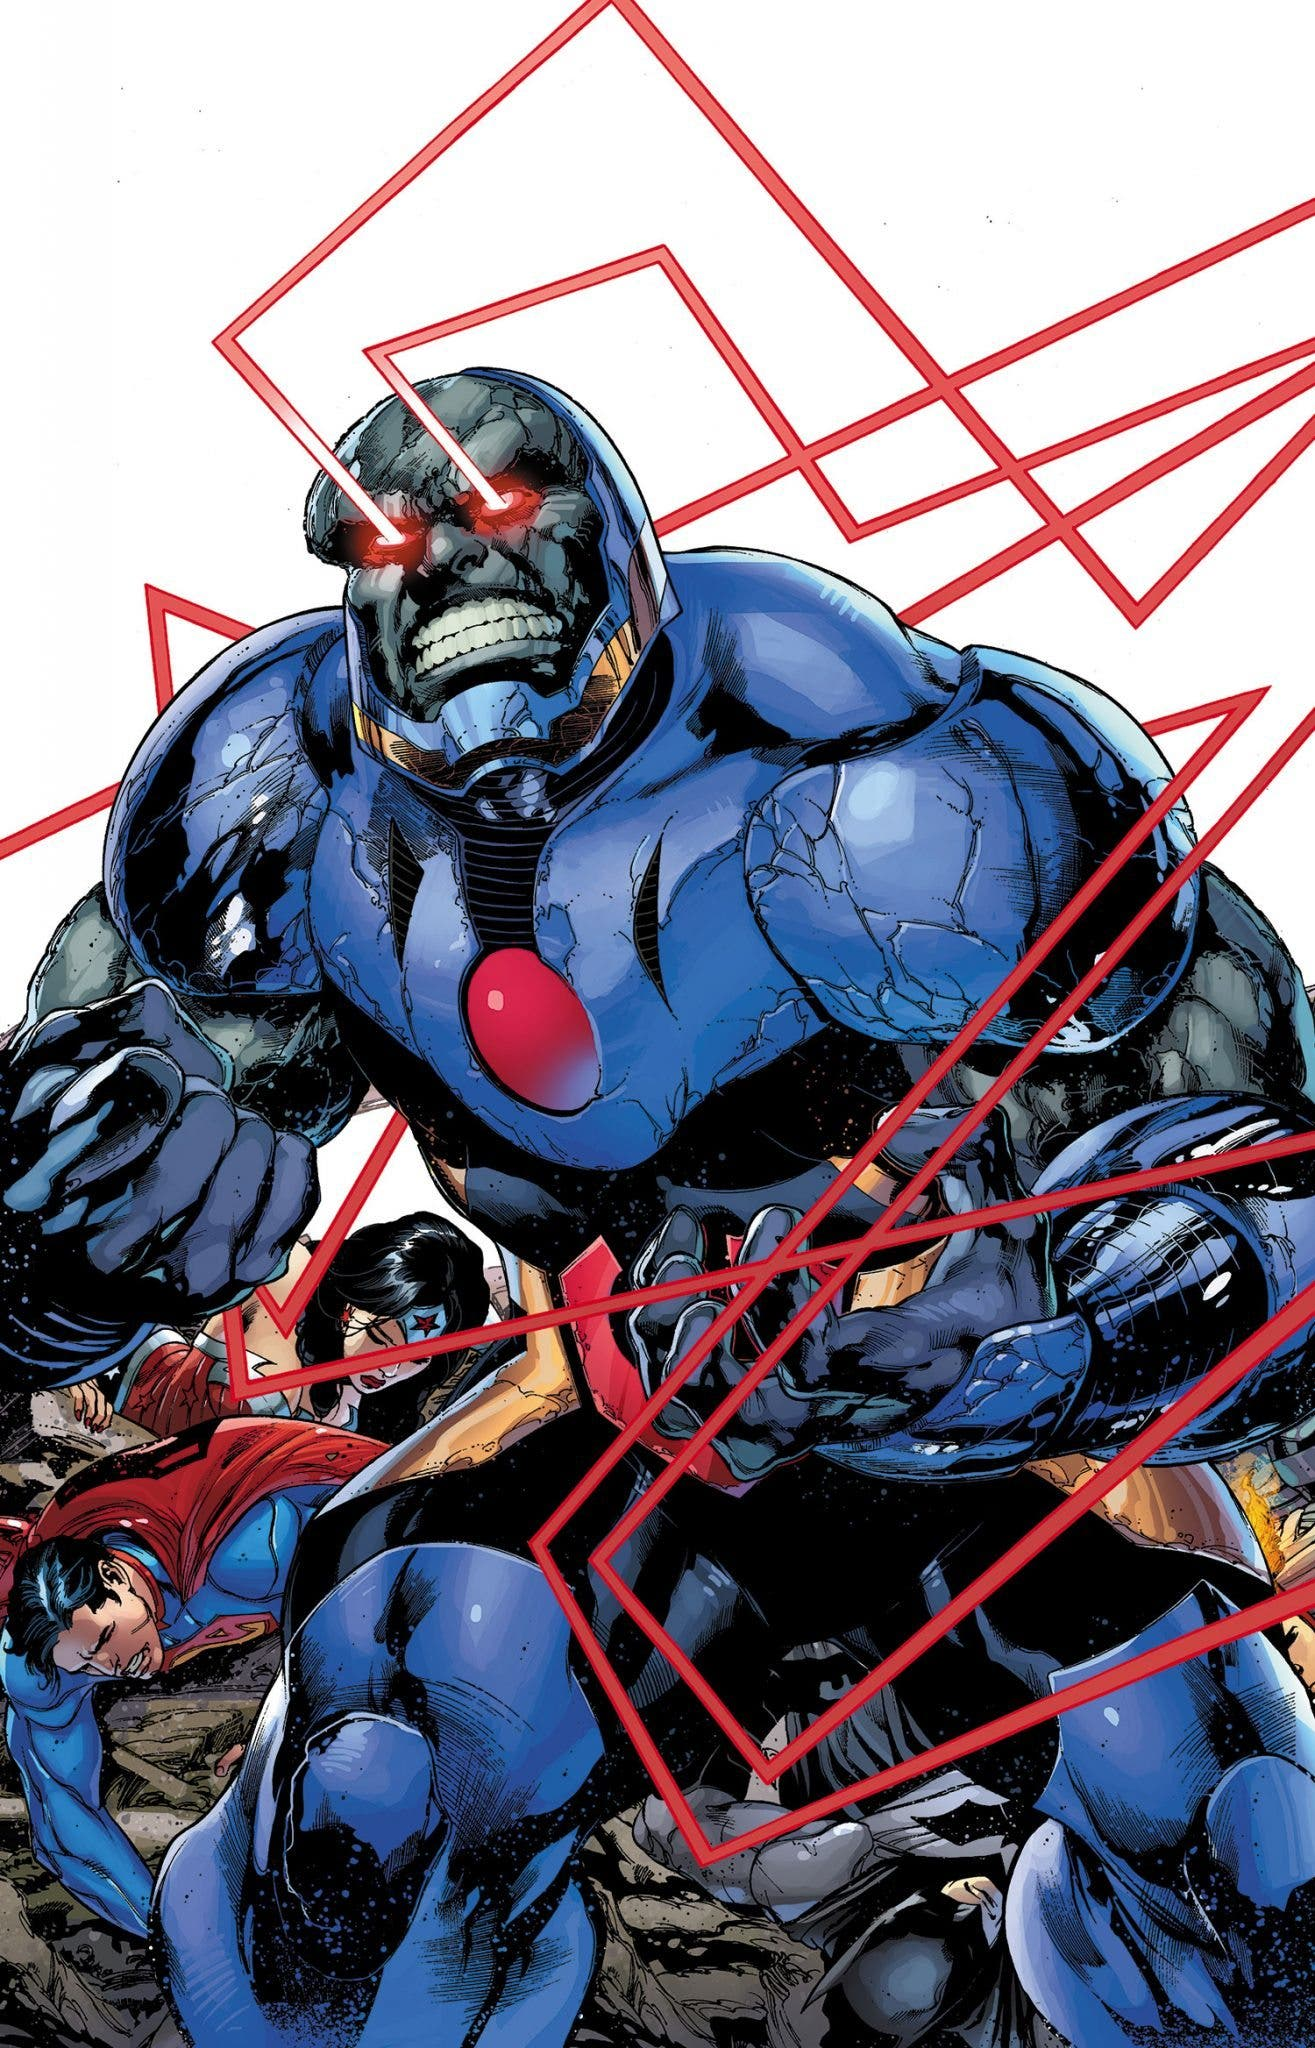 Rayos Omega - Darkseid - Batman v Superman (3)